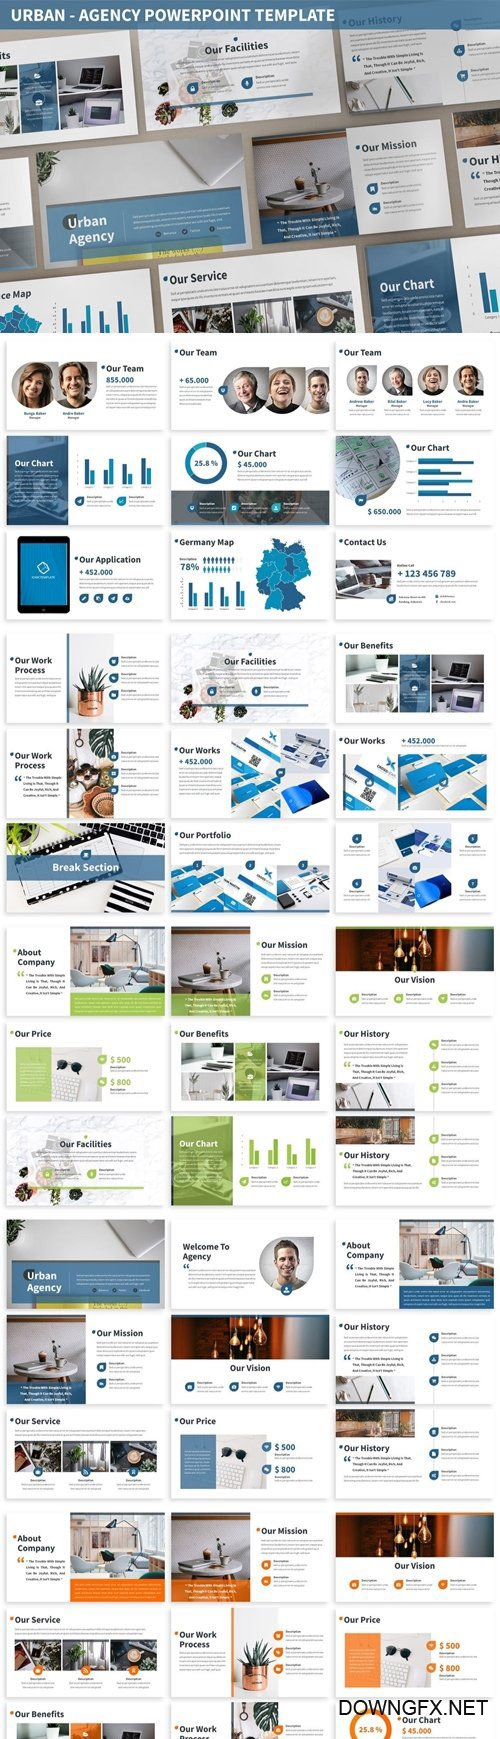 Urban - Agency Powerpoint Template